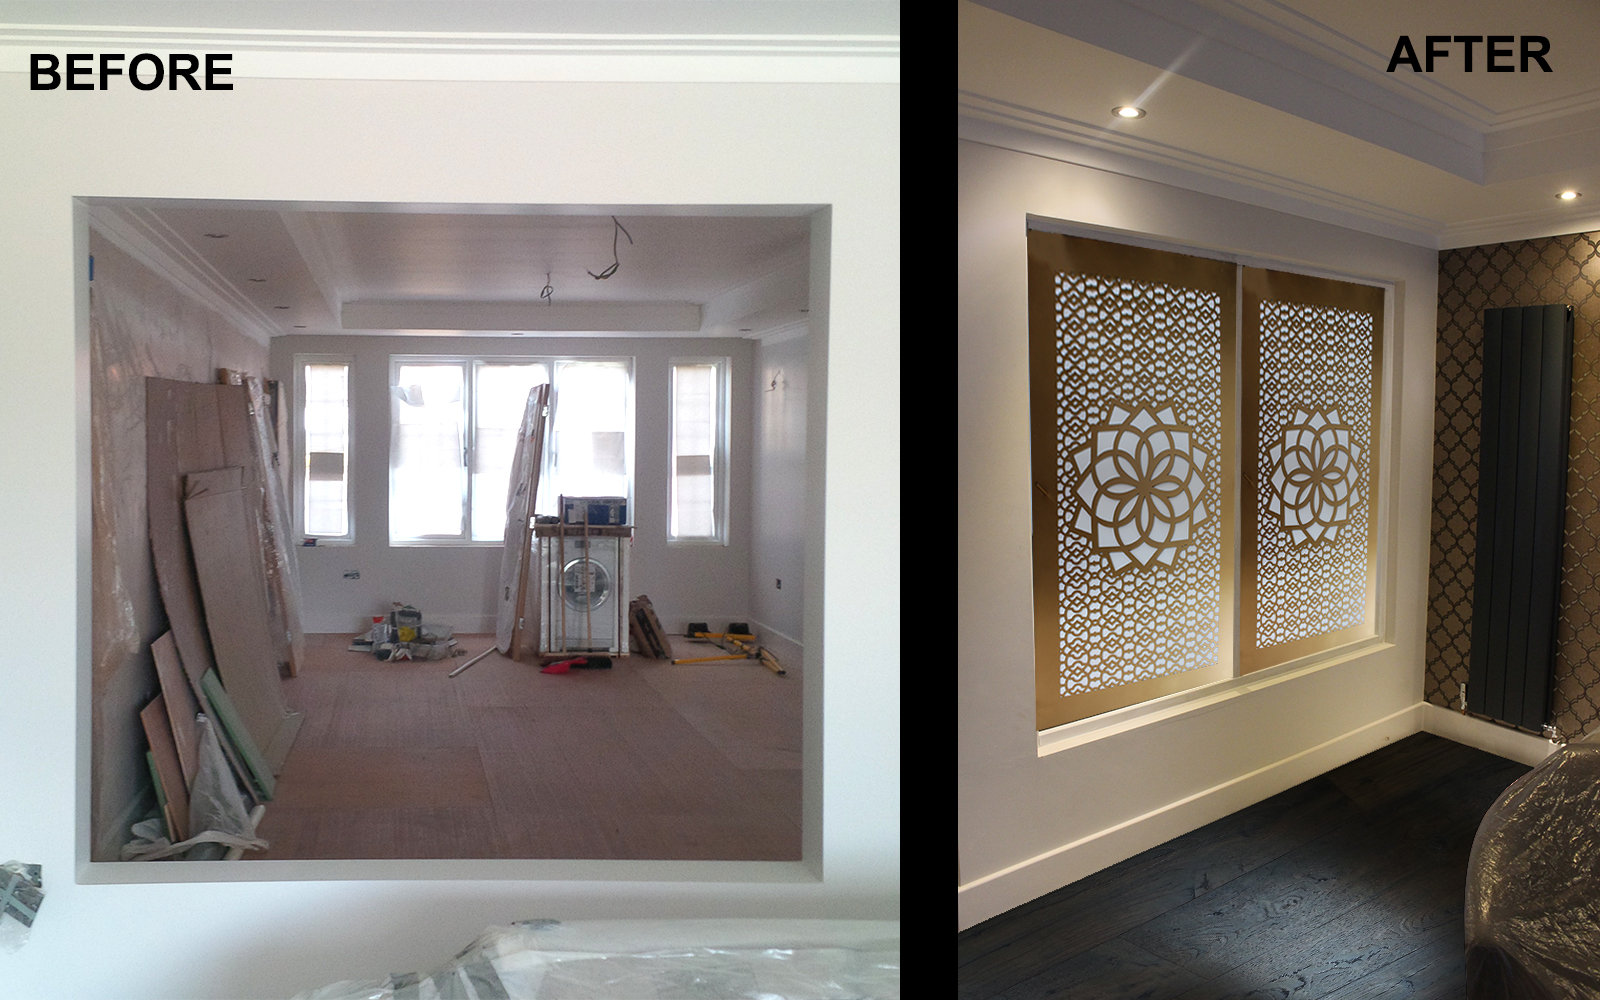 Decorative room partitions and window screens